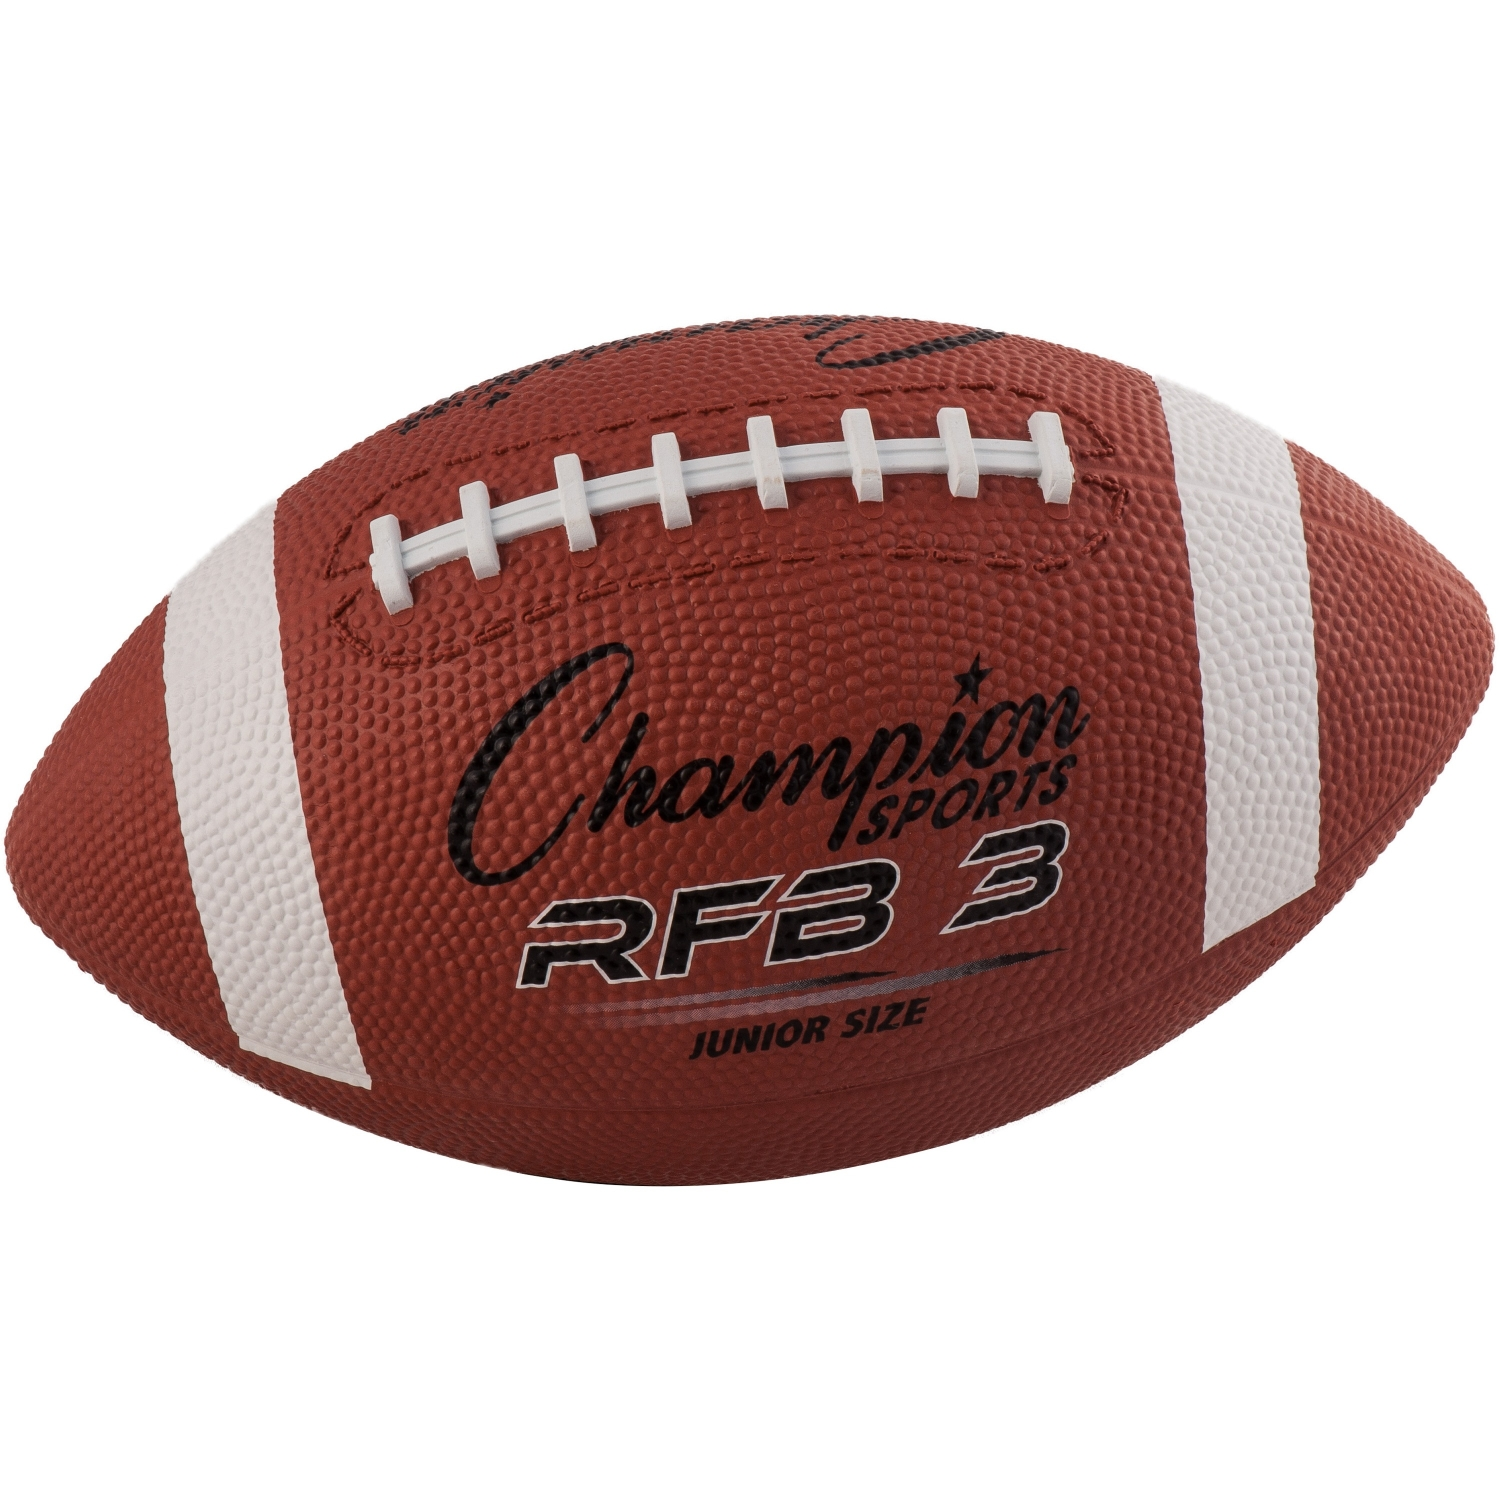 Click here to buy Champion Sports Rubber Sports Ball, For Football, Junior Size, Brown by CHAMPION SPORT.